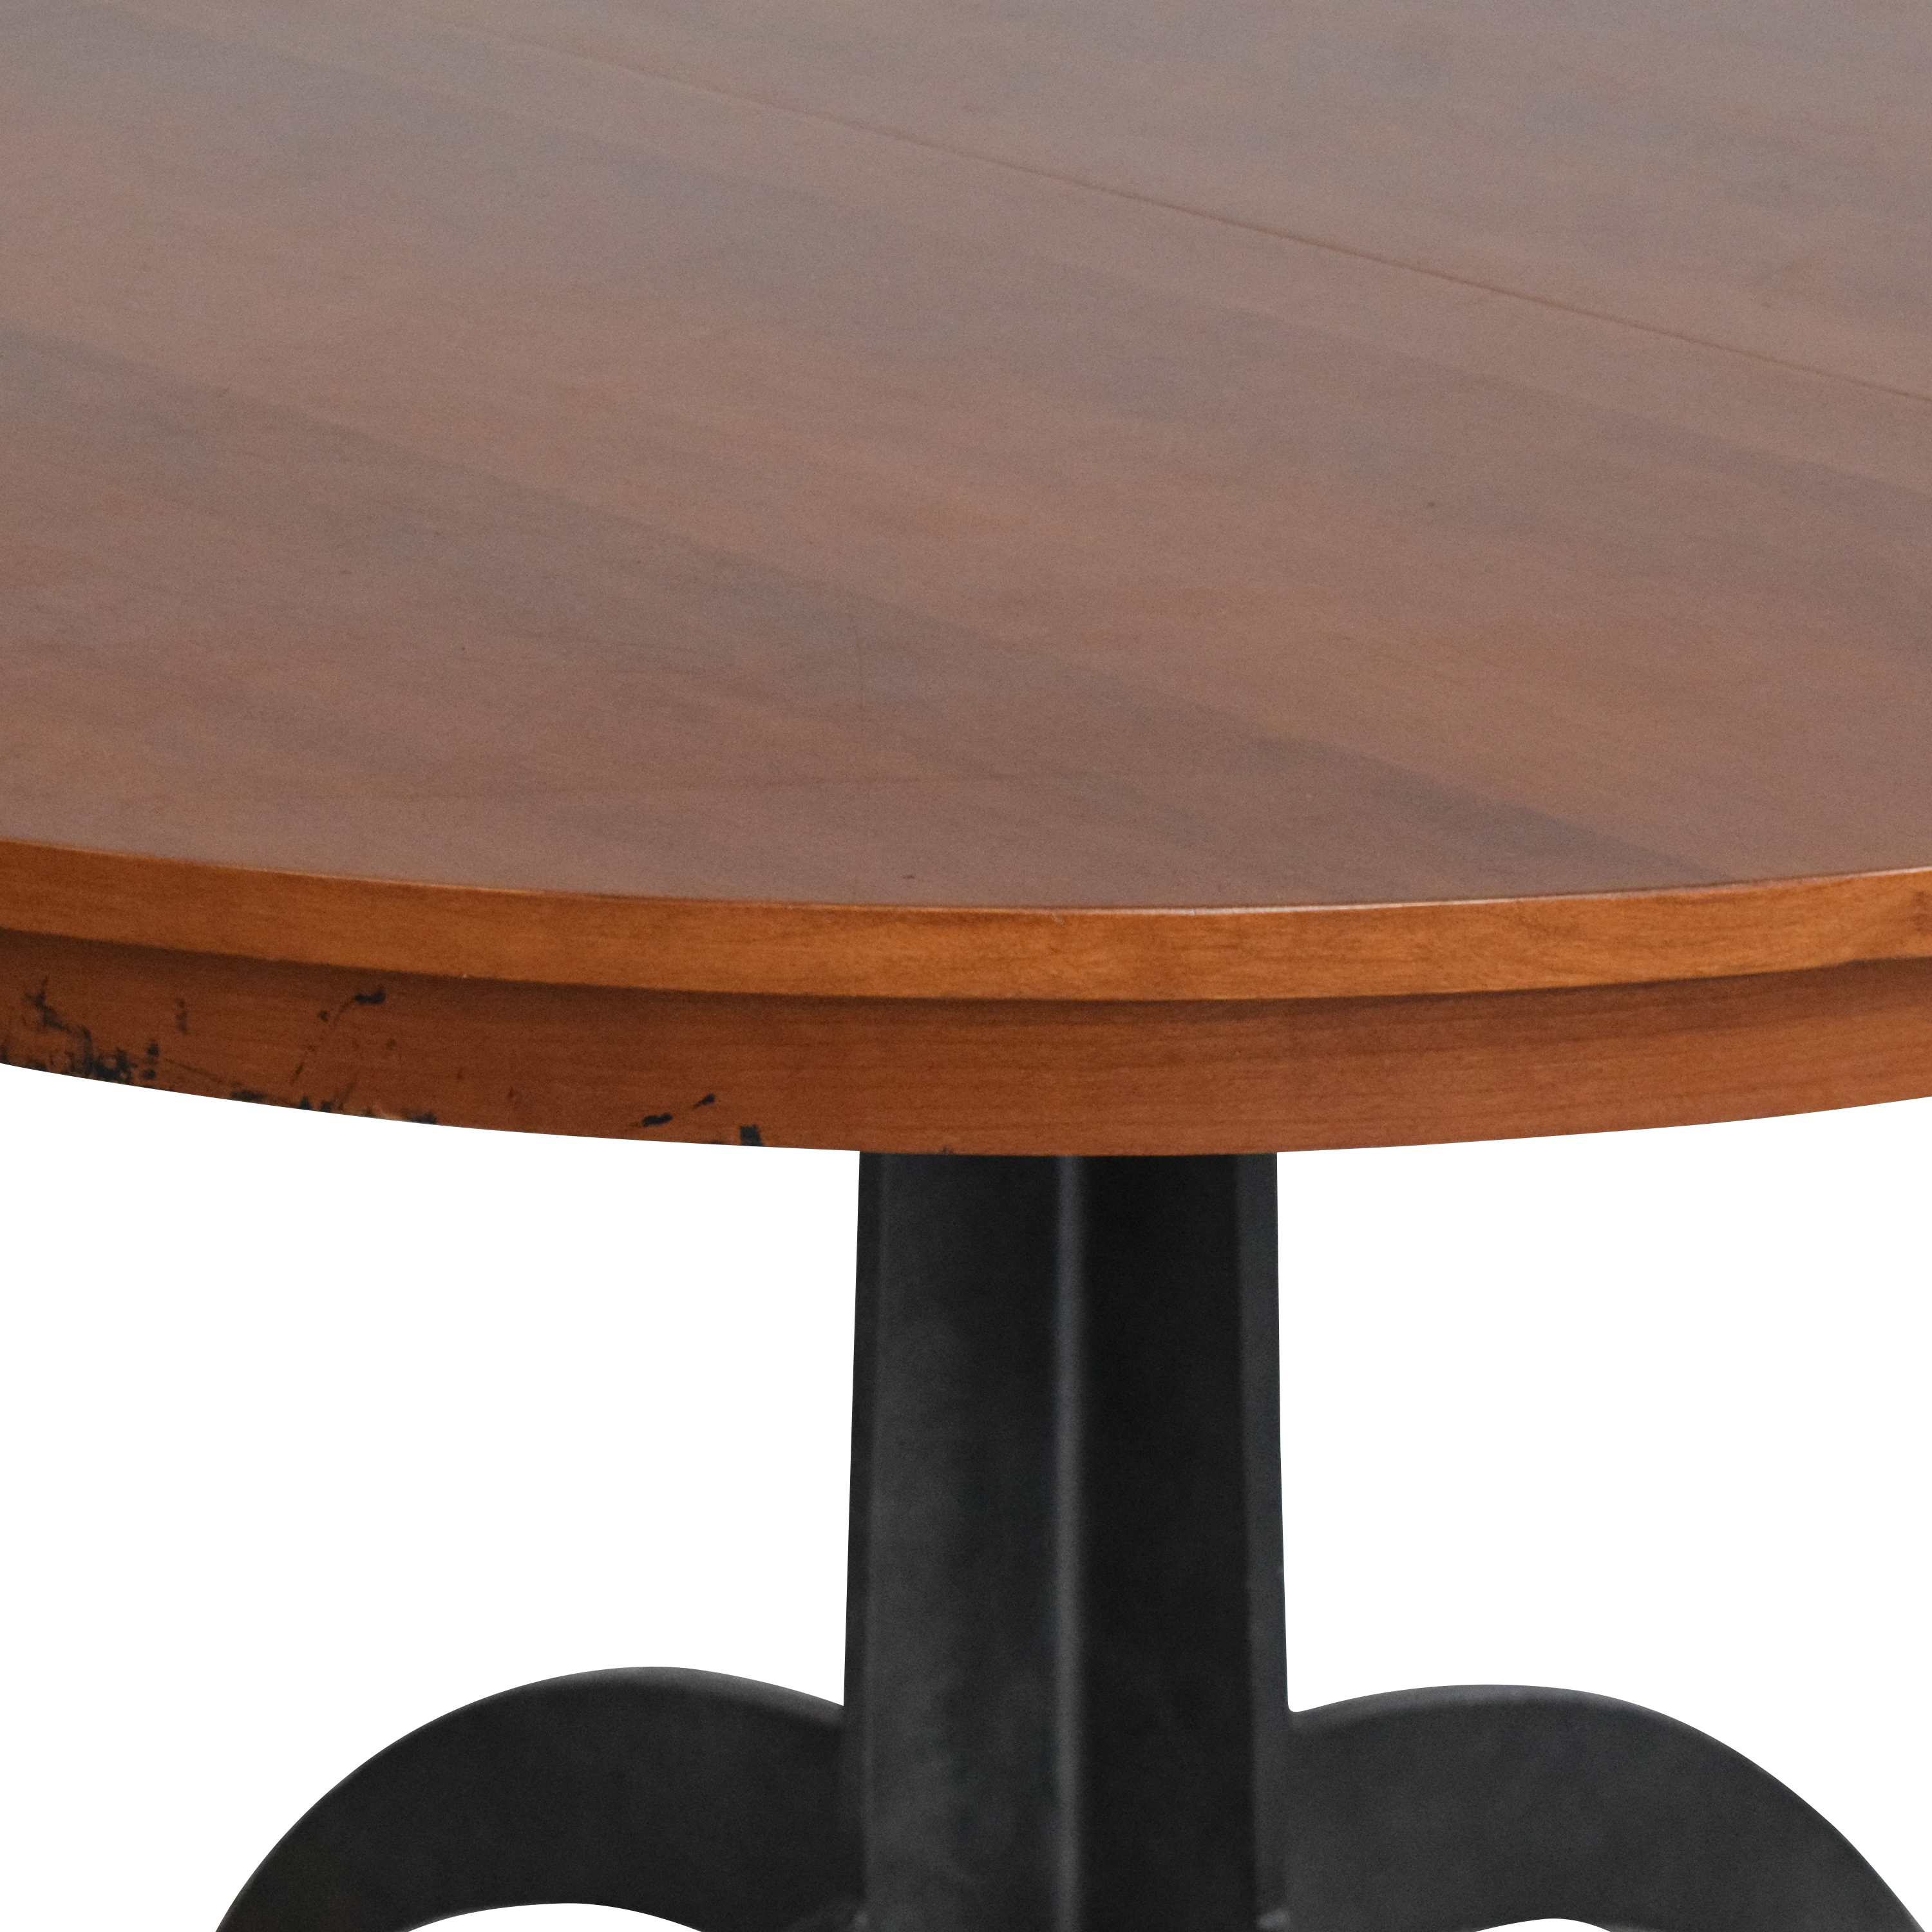 Ethan Allen Ethan Allen Round Extendable Dining Table nyc